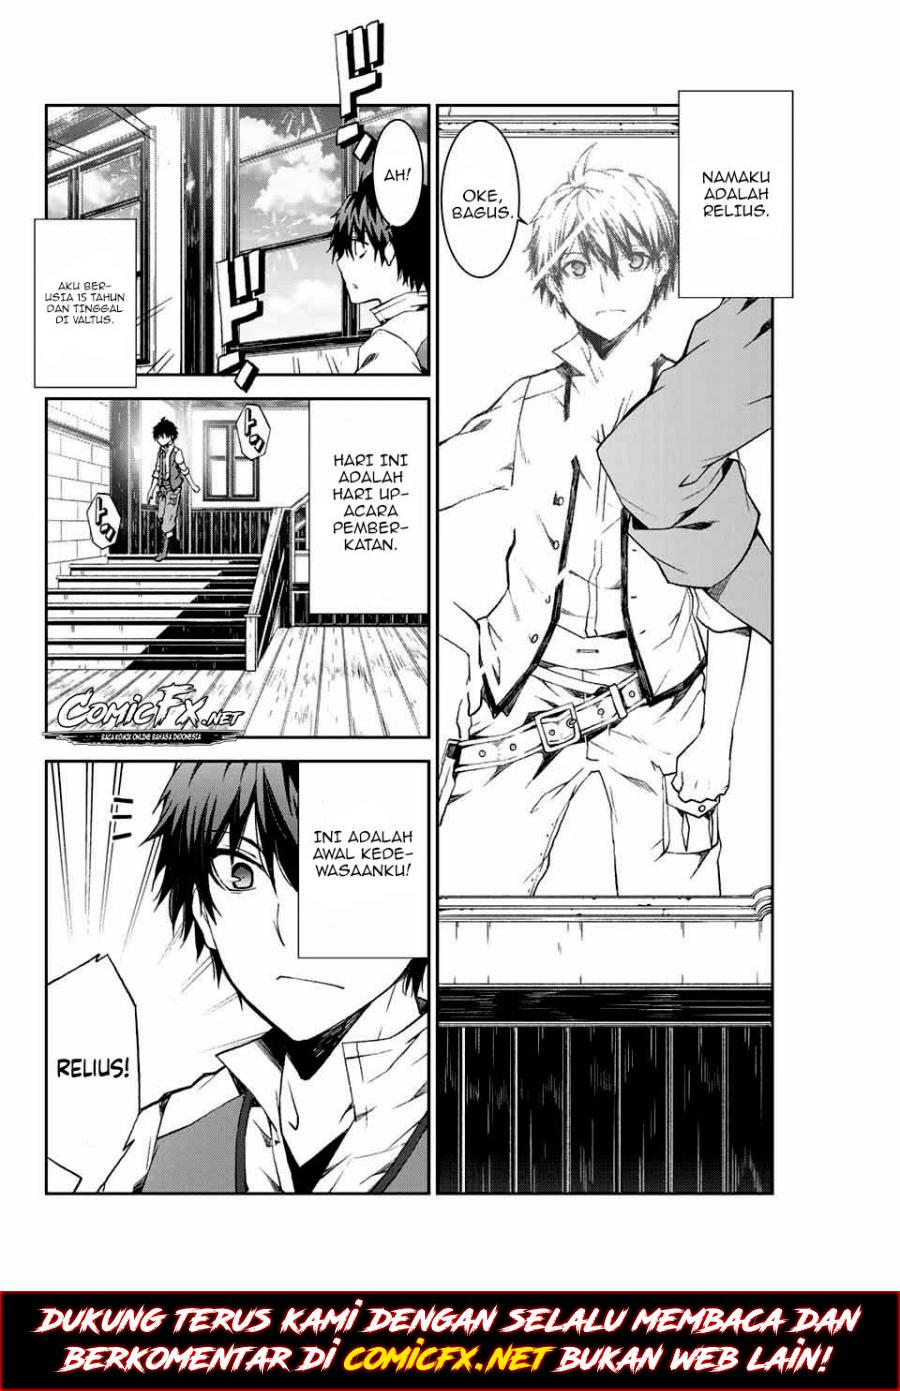 """Spoiler Manga The Weakest Occupation """"Blacksmith,"""" but It's Actually the Strongest 3"""